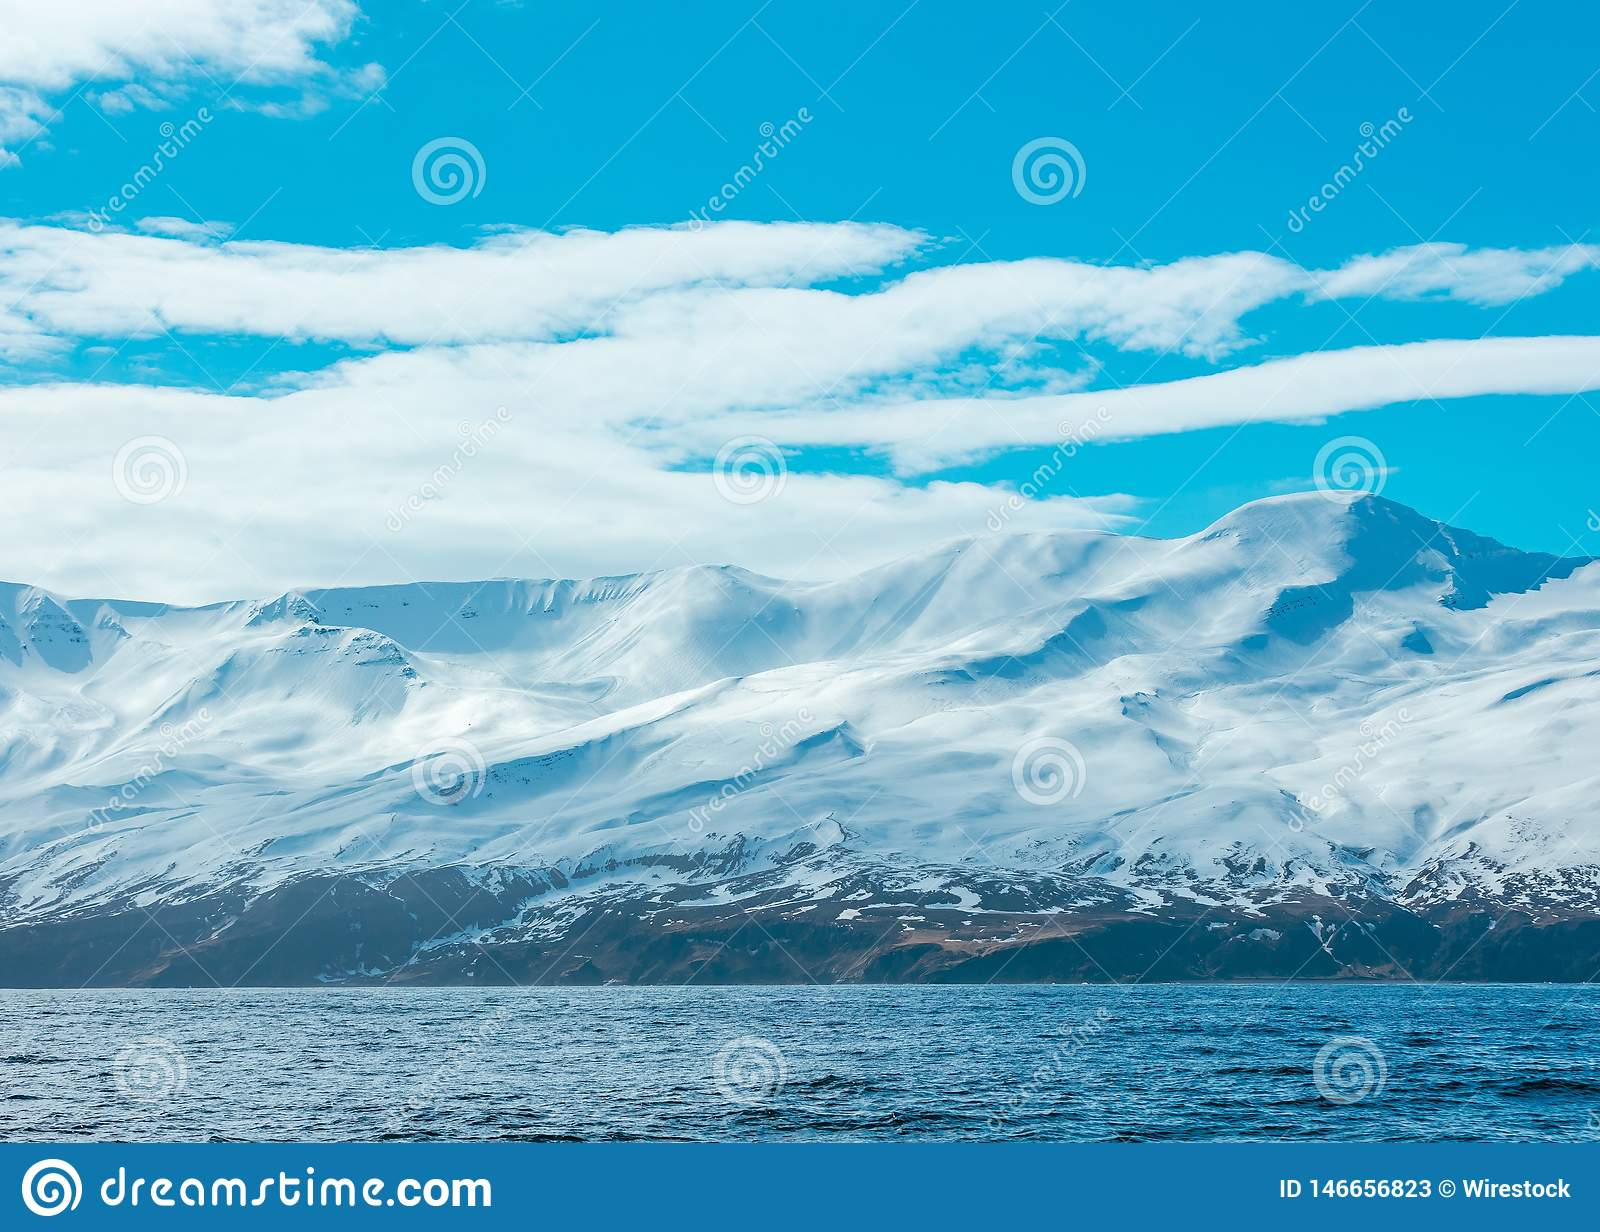 Amazing shot of snowy mountains and the sea